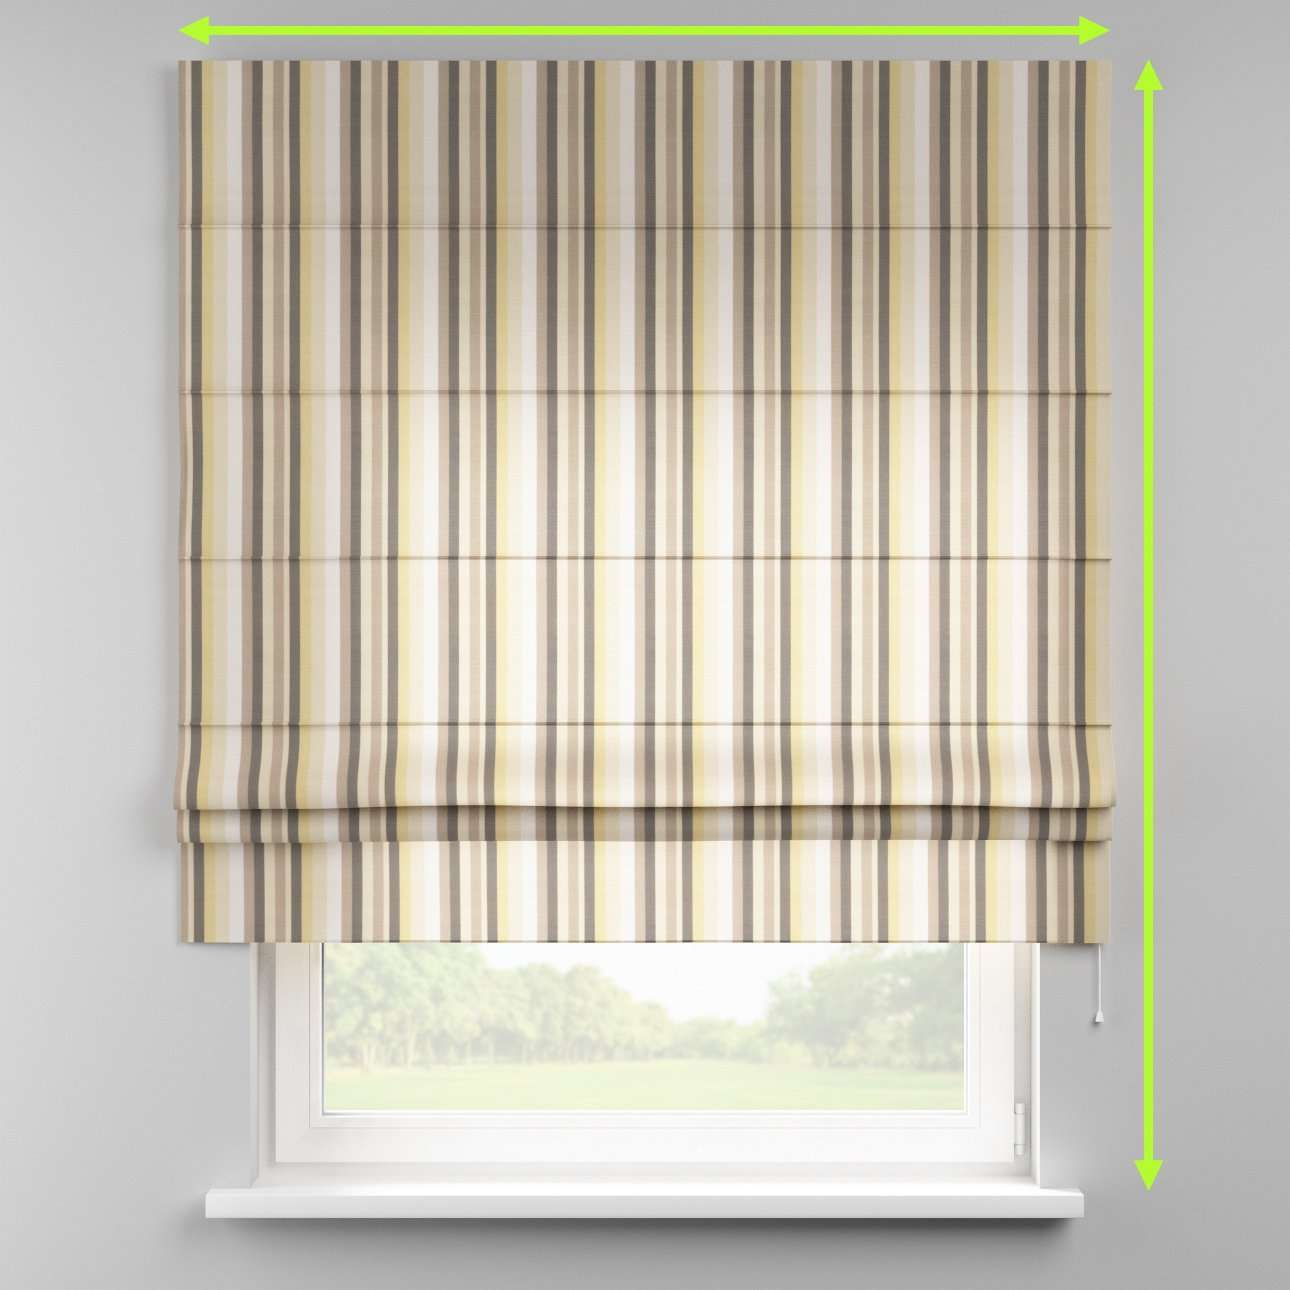 Padva roman blind  in collection Norge, fabric: 140-80